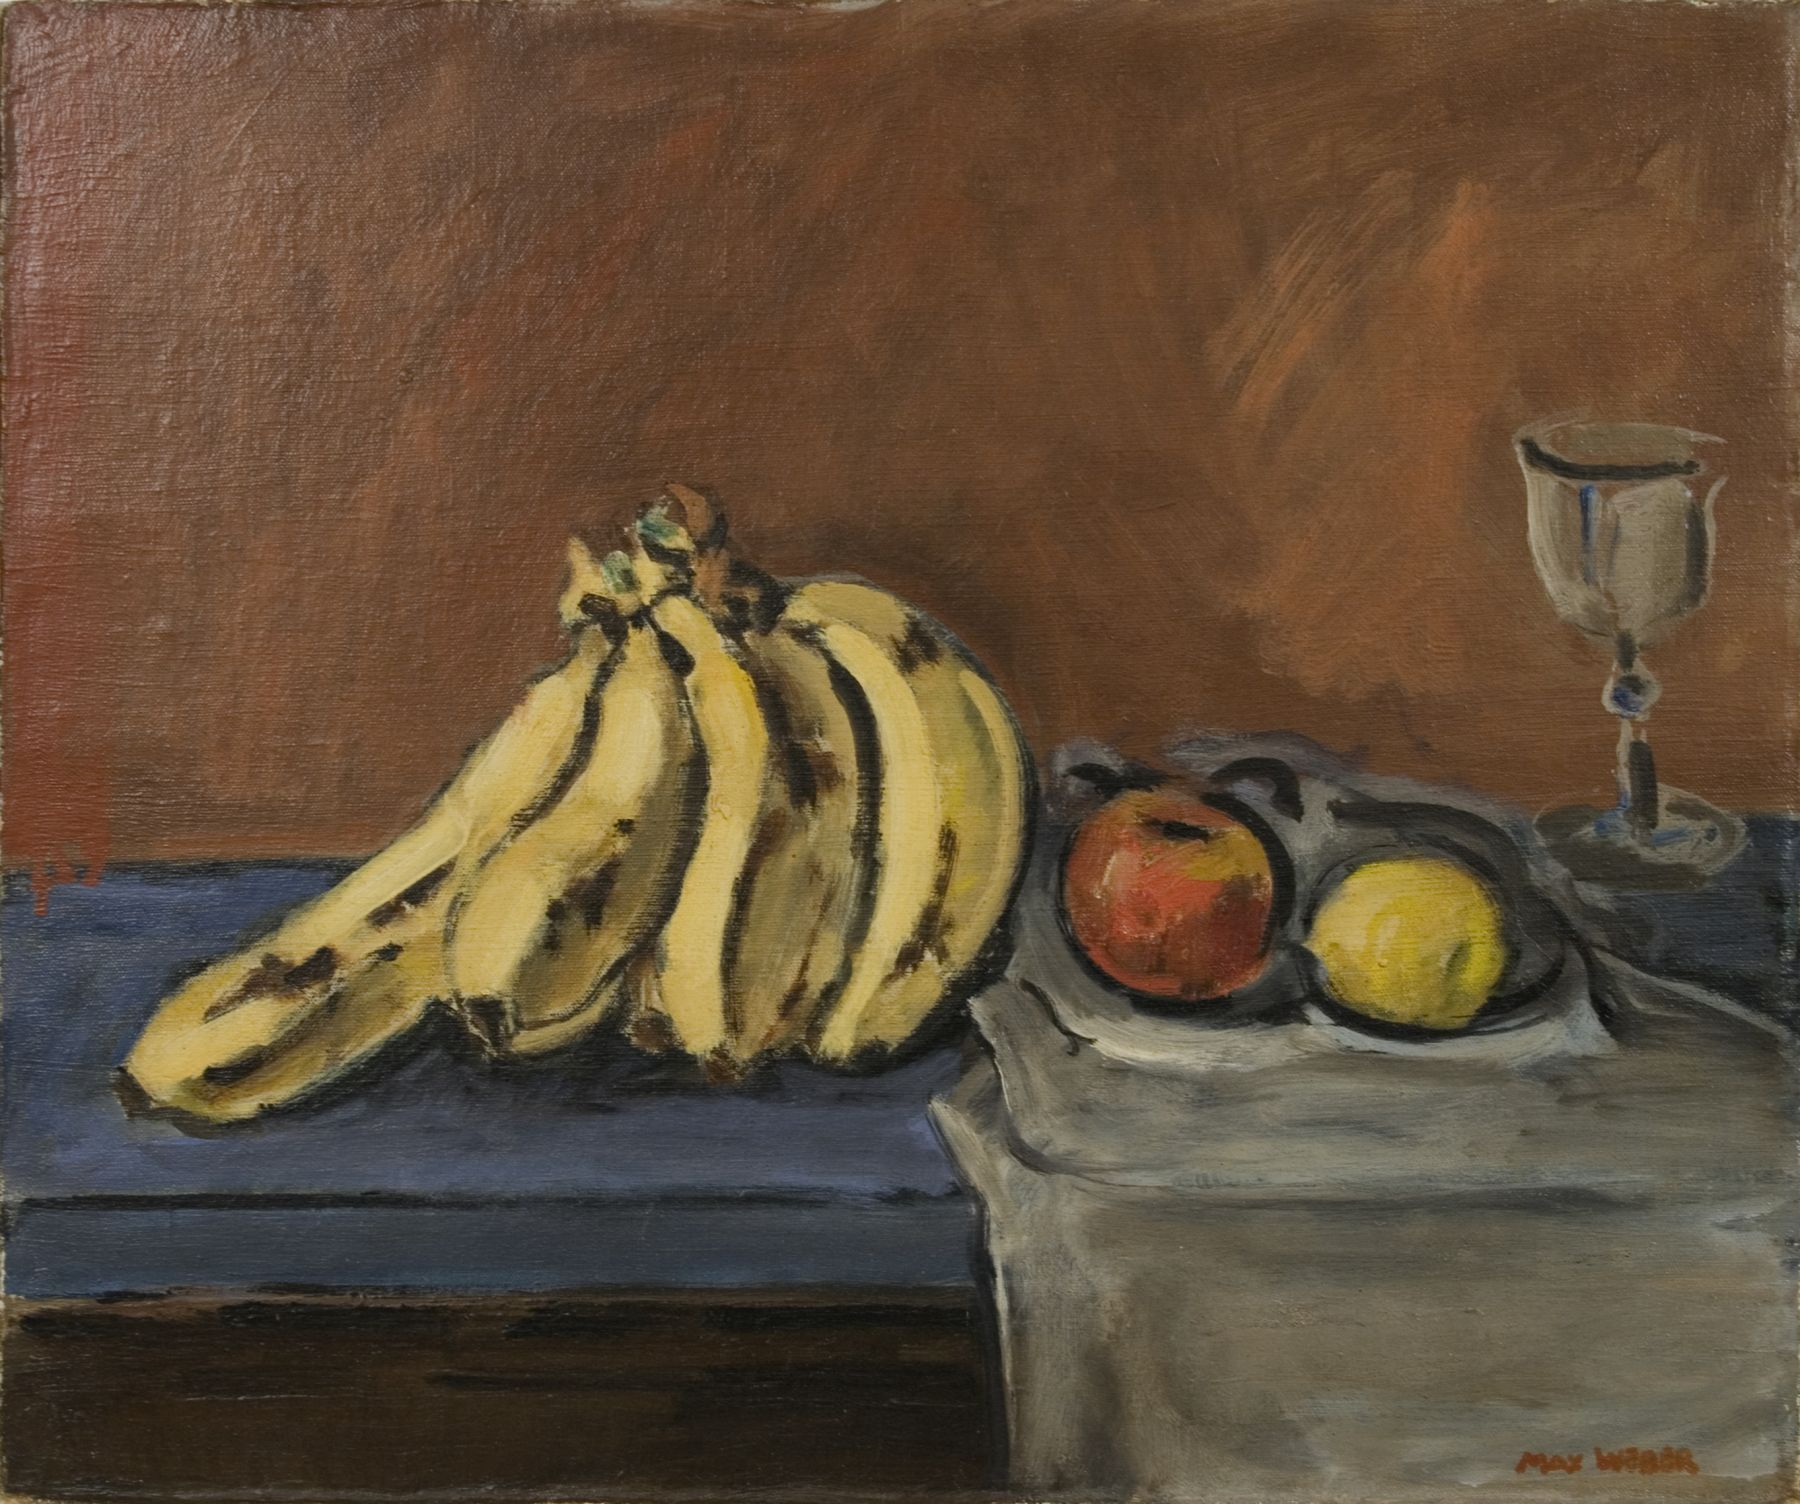 Max Weber, Still Life, c.1913, oil on canvas, 15 1/4 x 18 1/8 inches